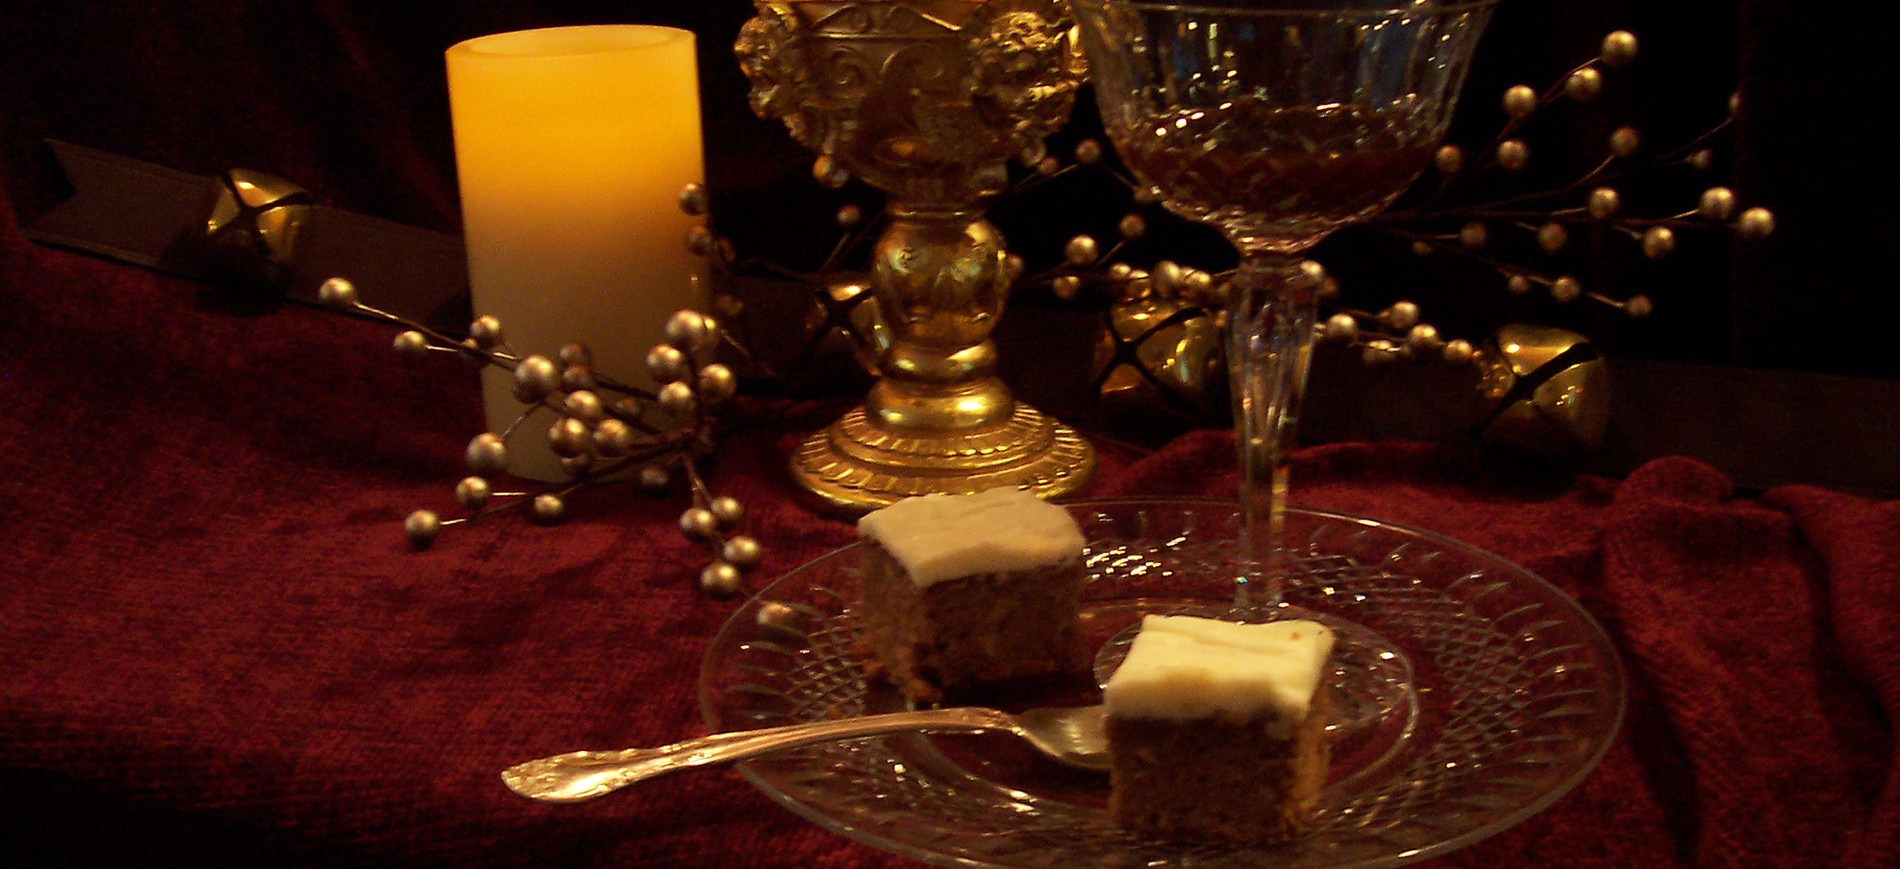 Burgundy velvet cloth with pillar candle, gold goblet, champagne coupe, lebkuchen brownies on glass plate with fork